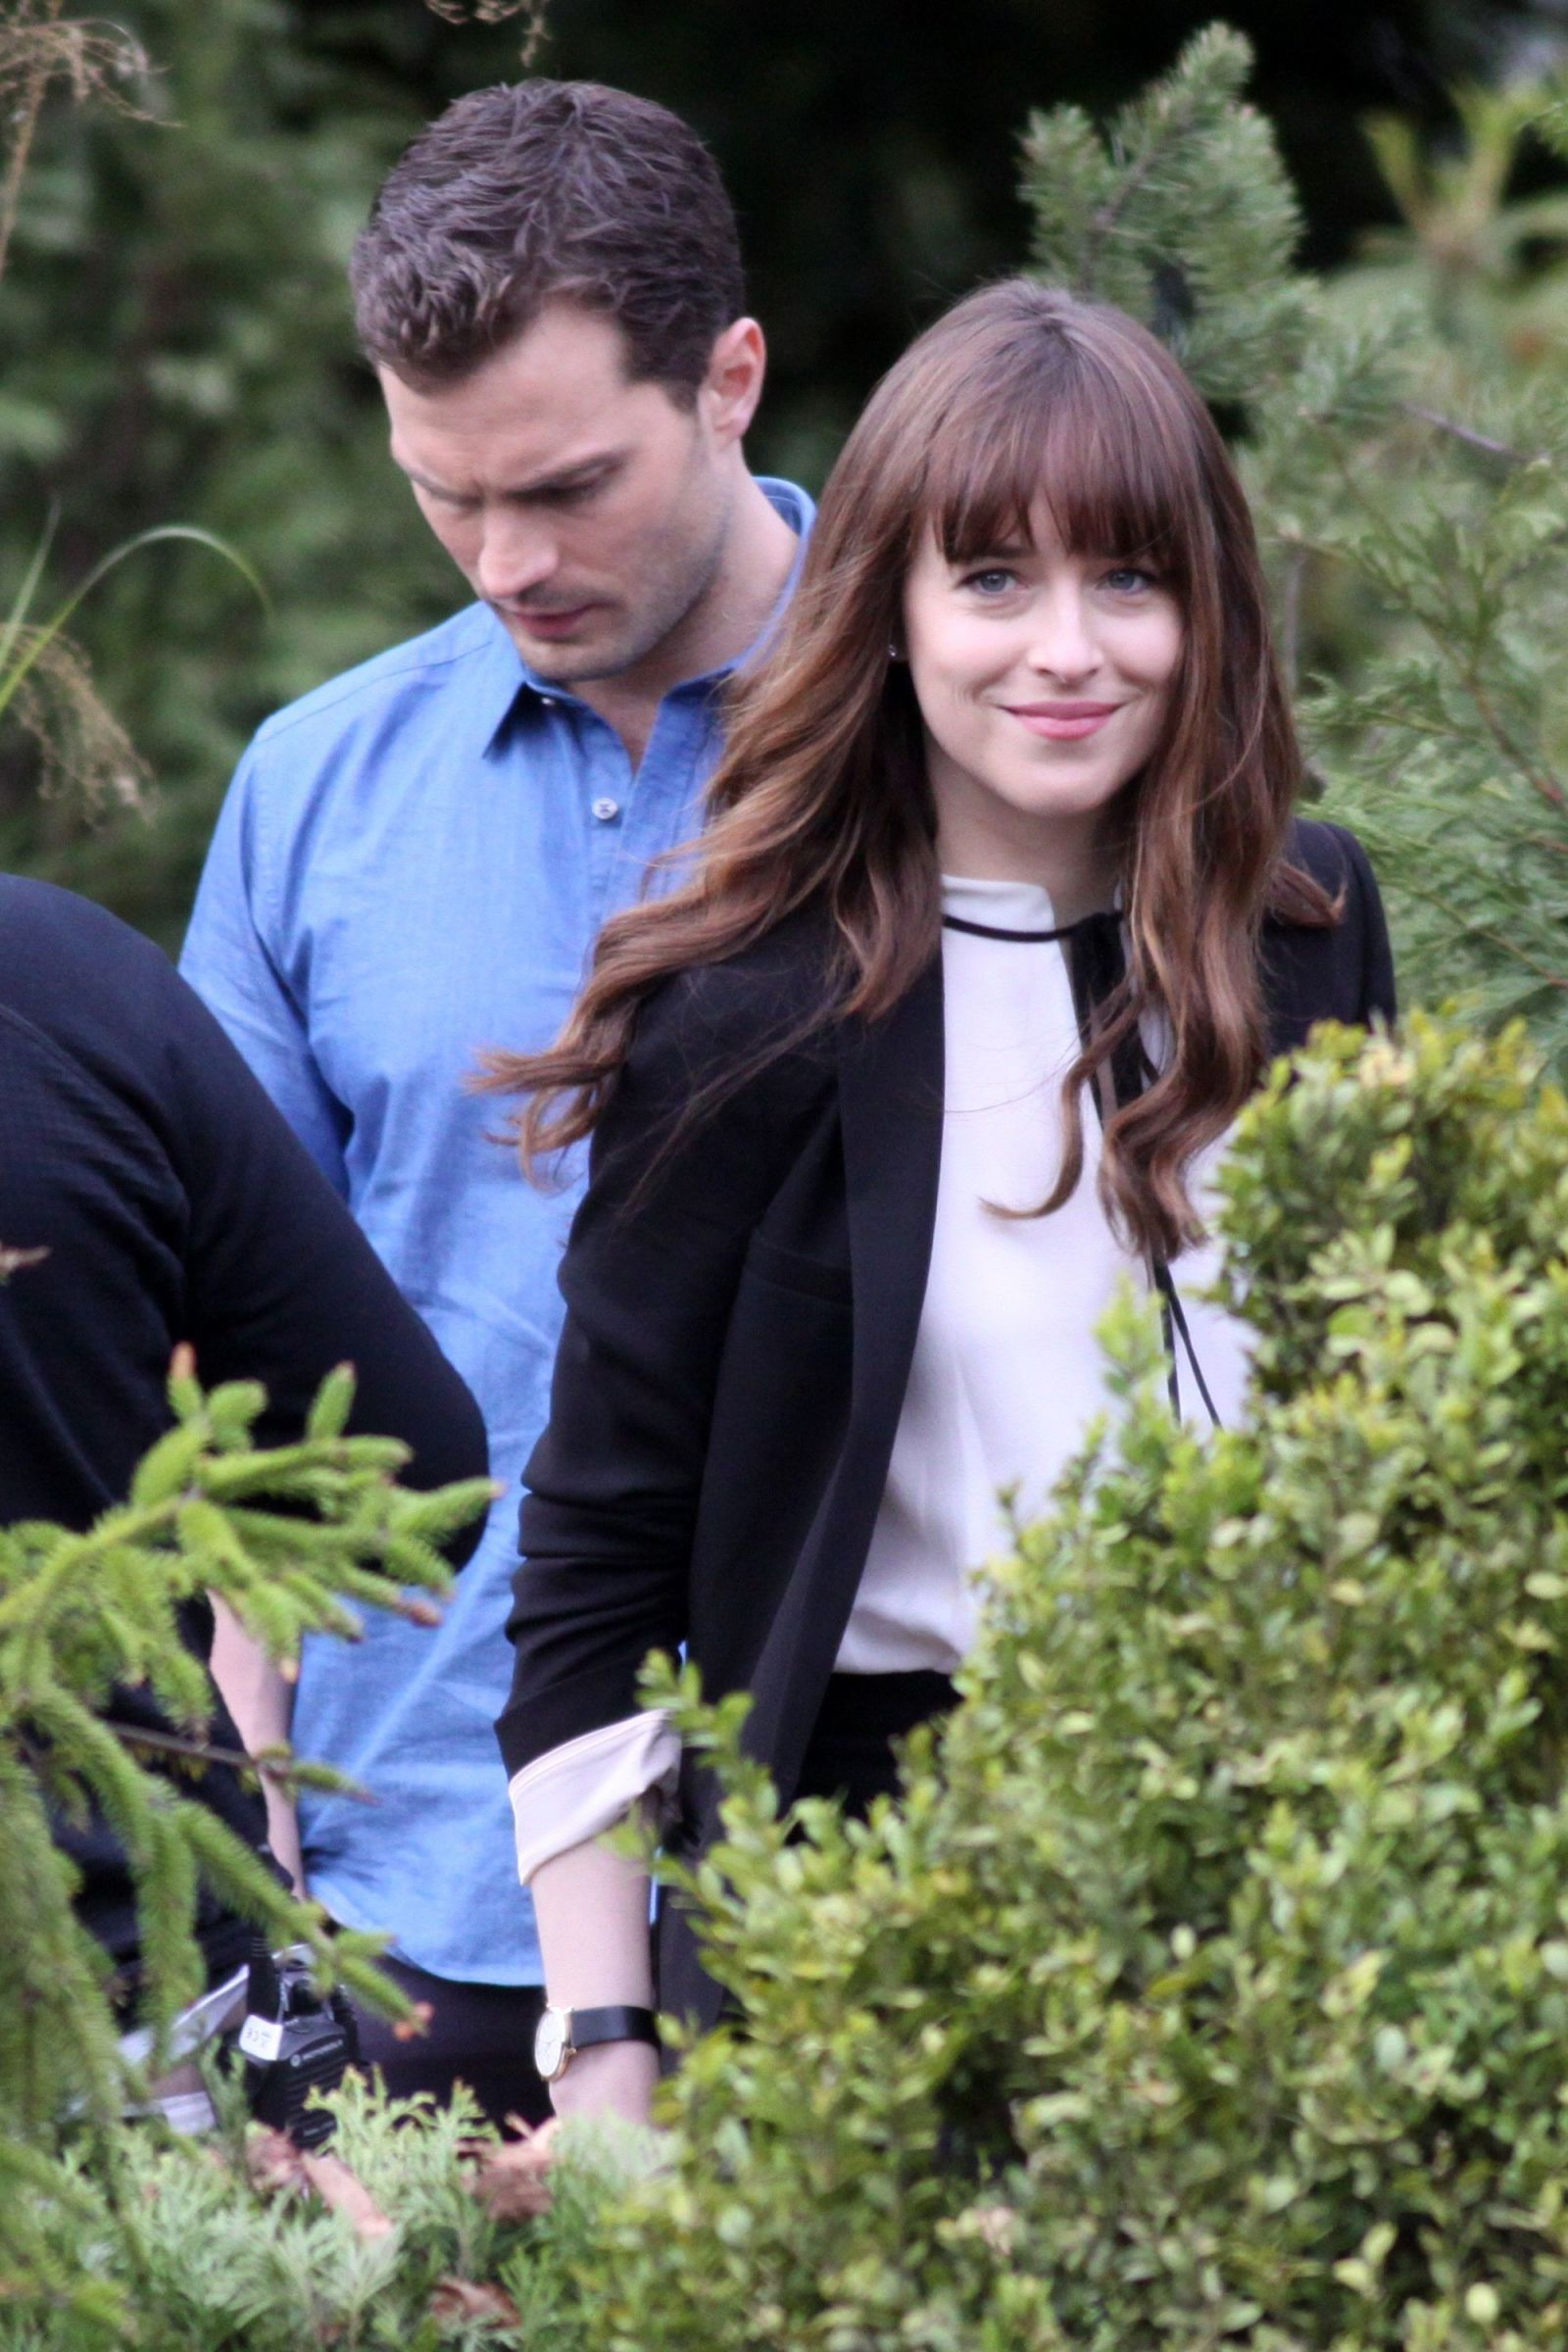 Dakota Johnson and Jamie Dornan Spotted With Wedding Rings on <i>Fifty Shades Darker</i> Set